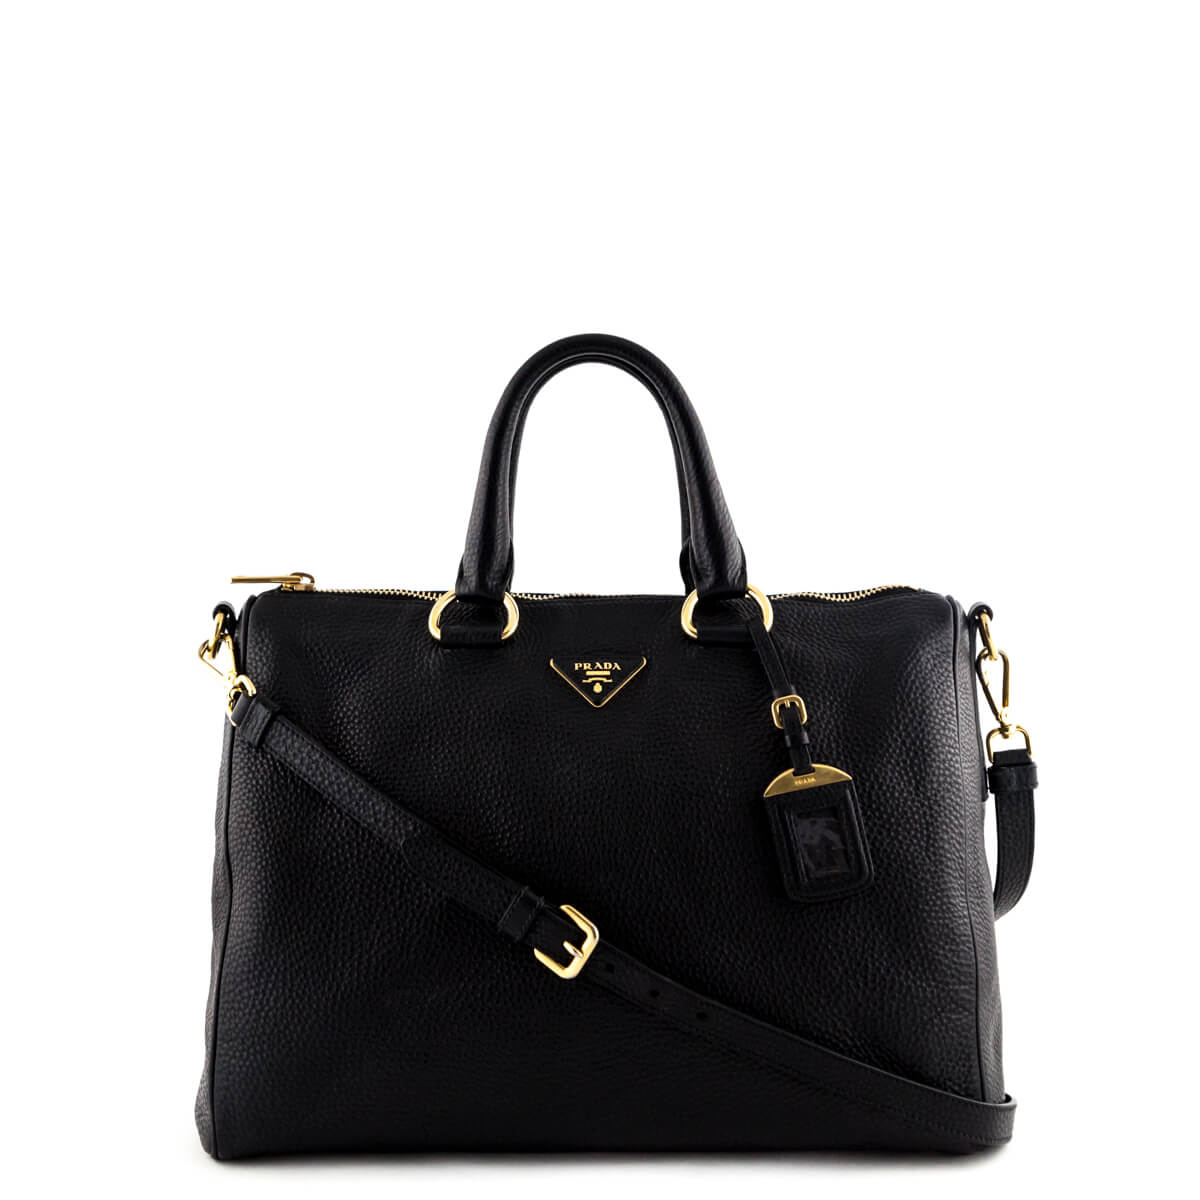 b1b9c26e60eab2 ... low price prada black vitello daino tote love that bag preowned  authentic designer handbags 8060d 65e38 ...